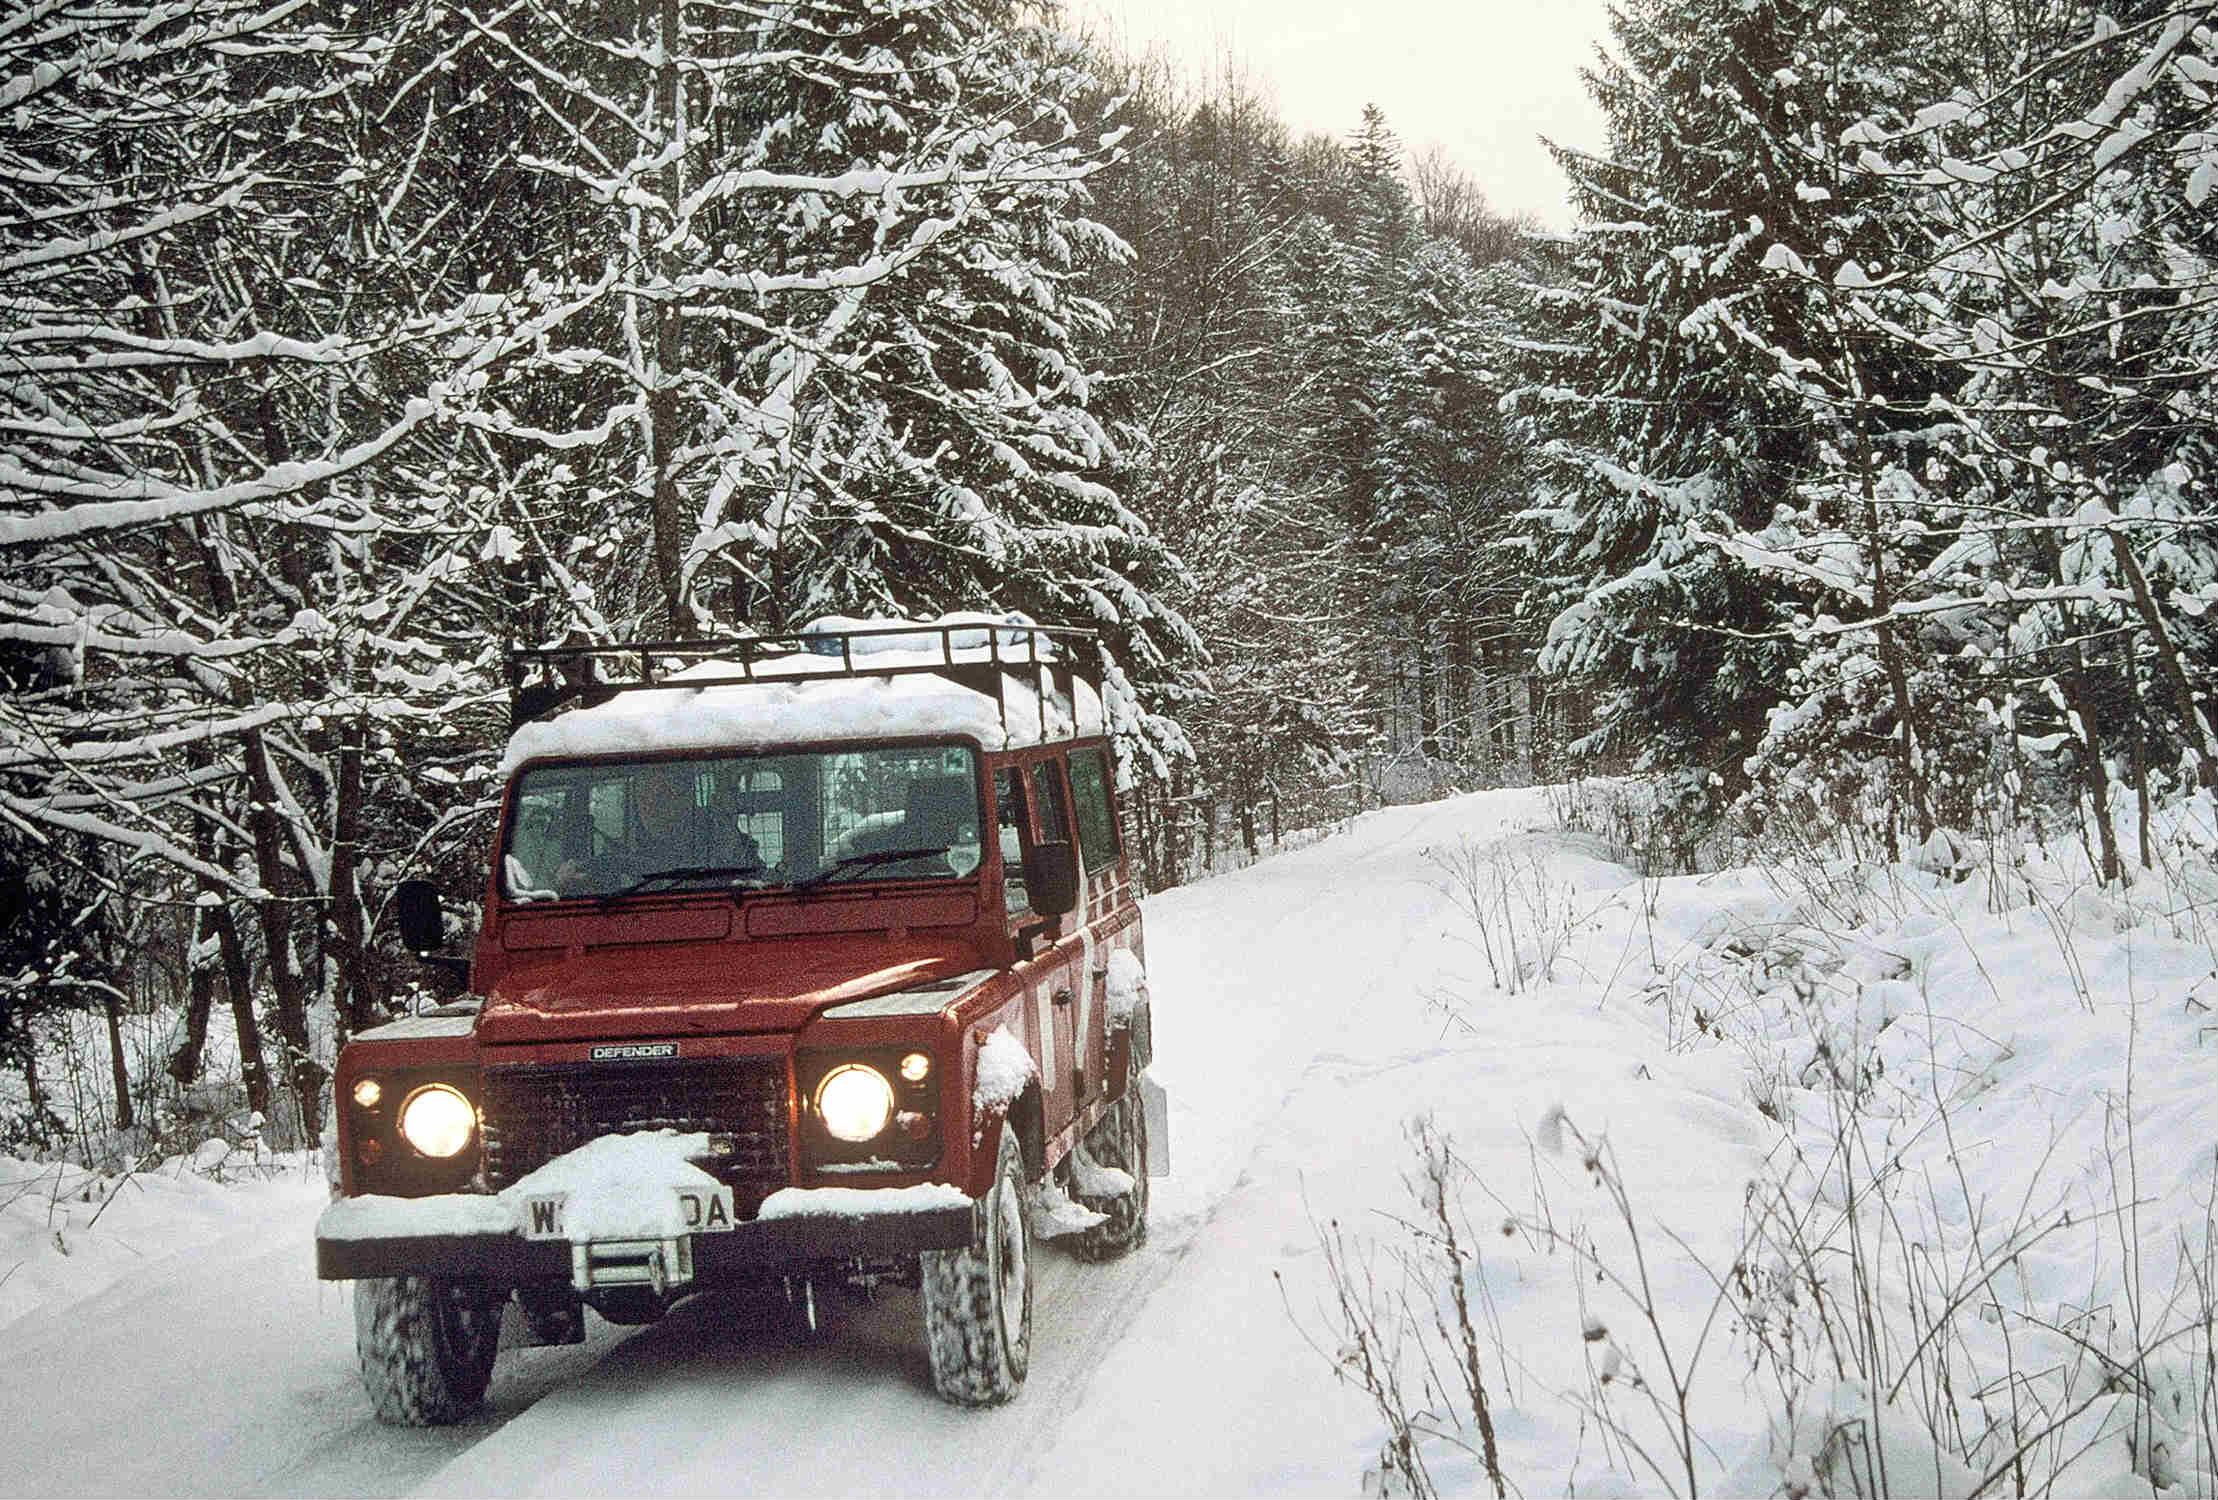 image of a vintage land rover in snow conditions